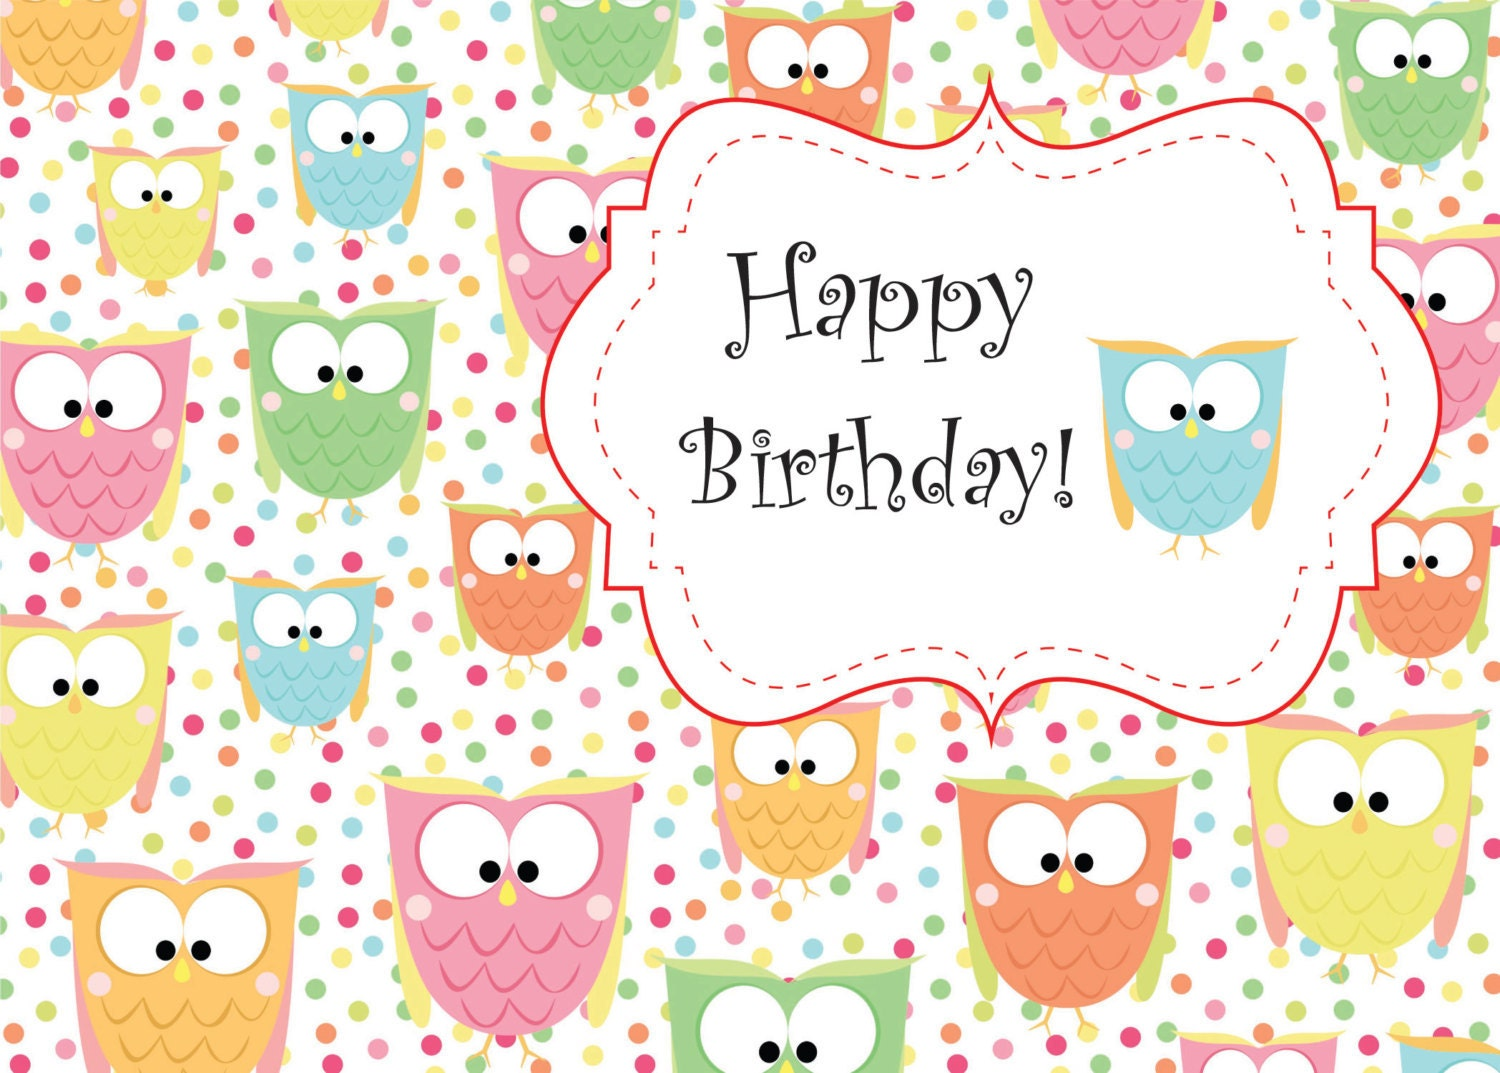 Print a birthday card jcmanagement print a birthday card bookmarktalkfo Images